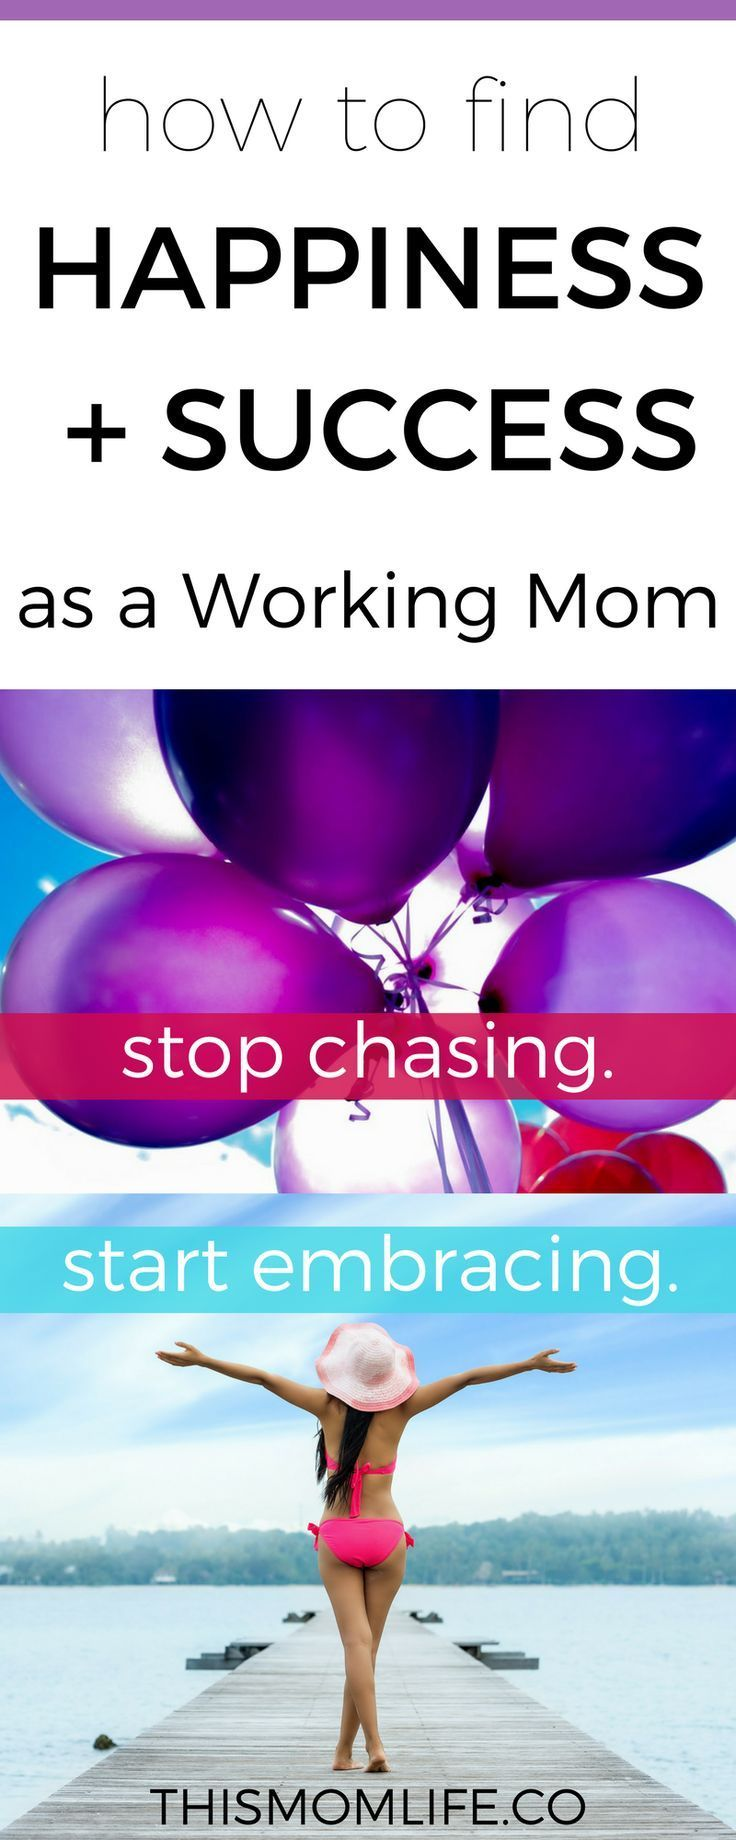 How to Find Happiness and Success as a Working Mom